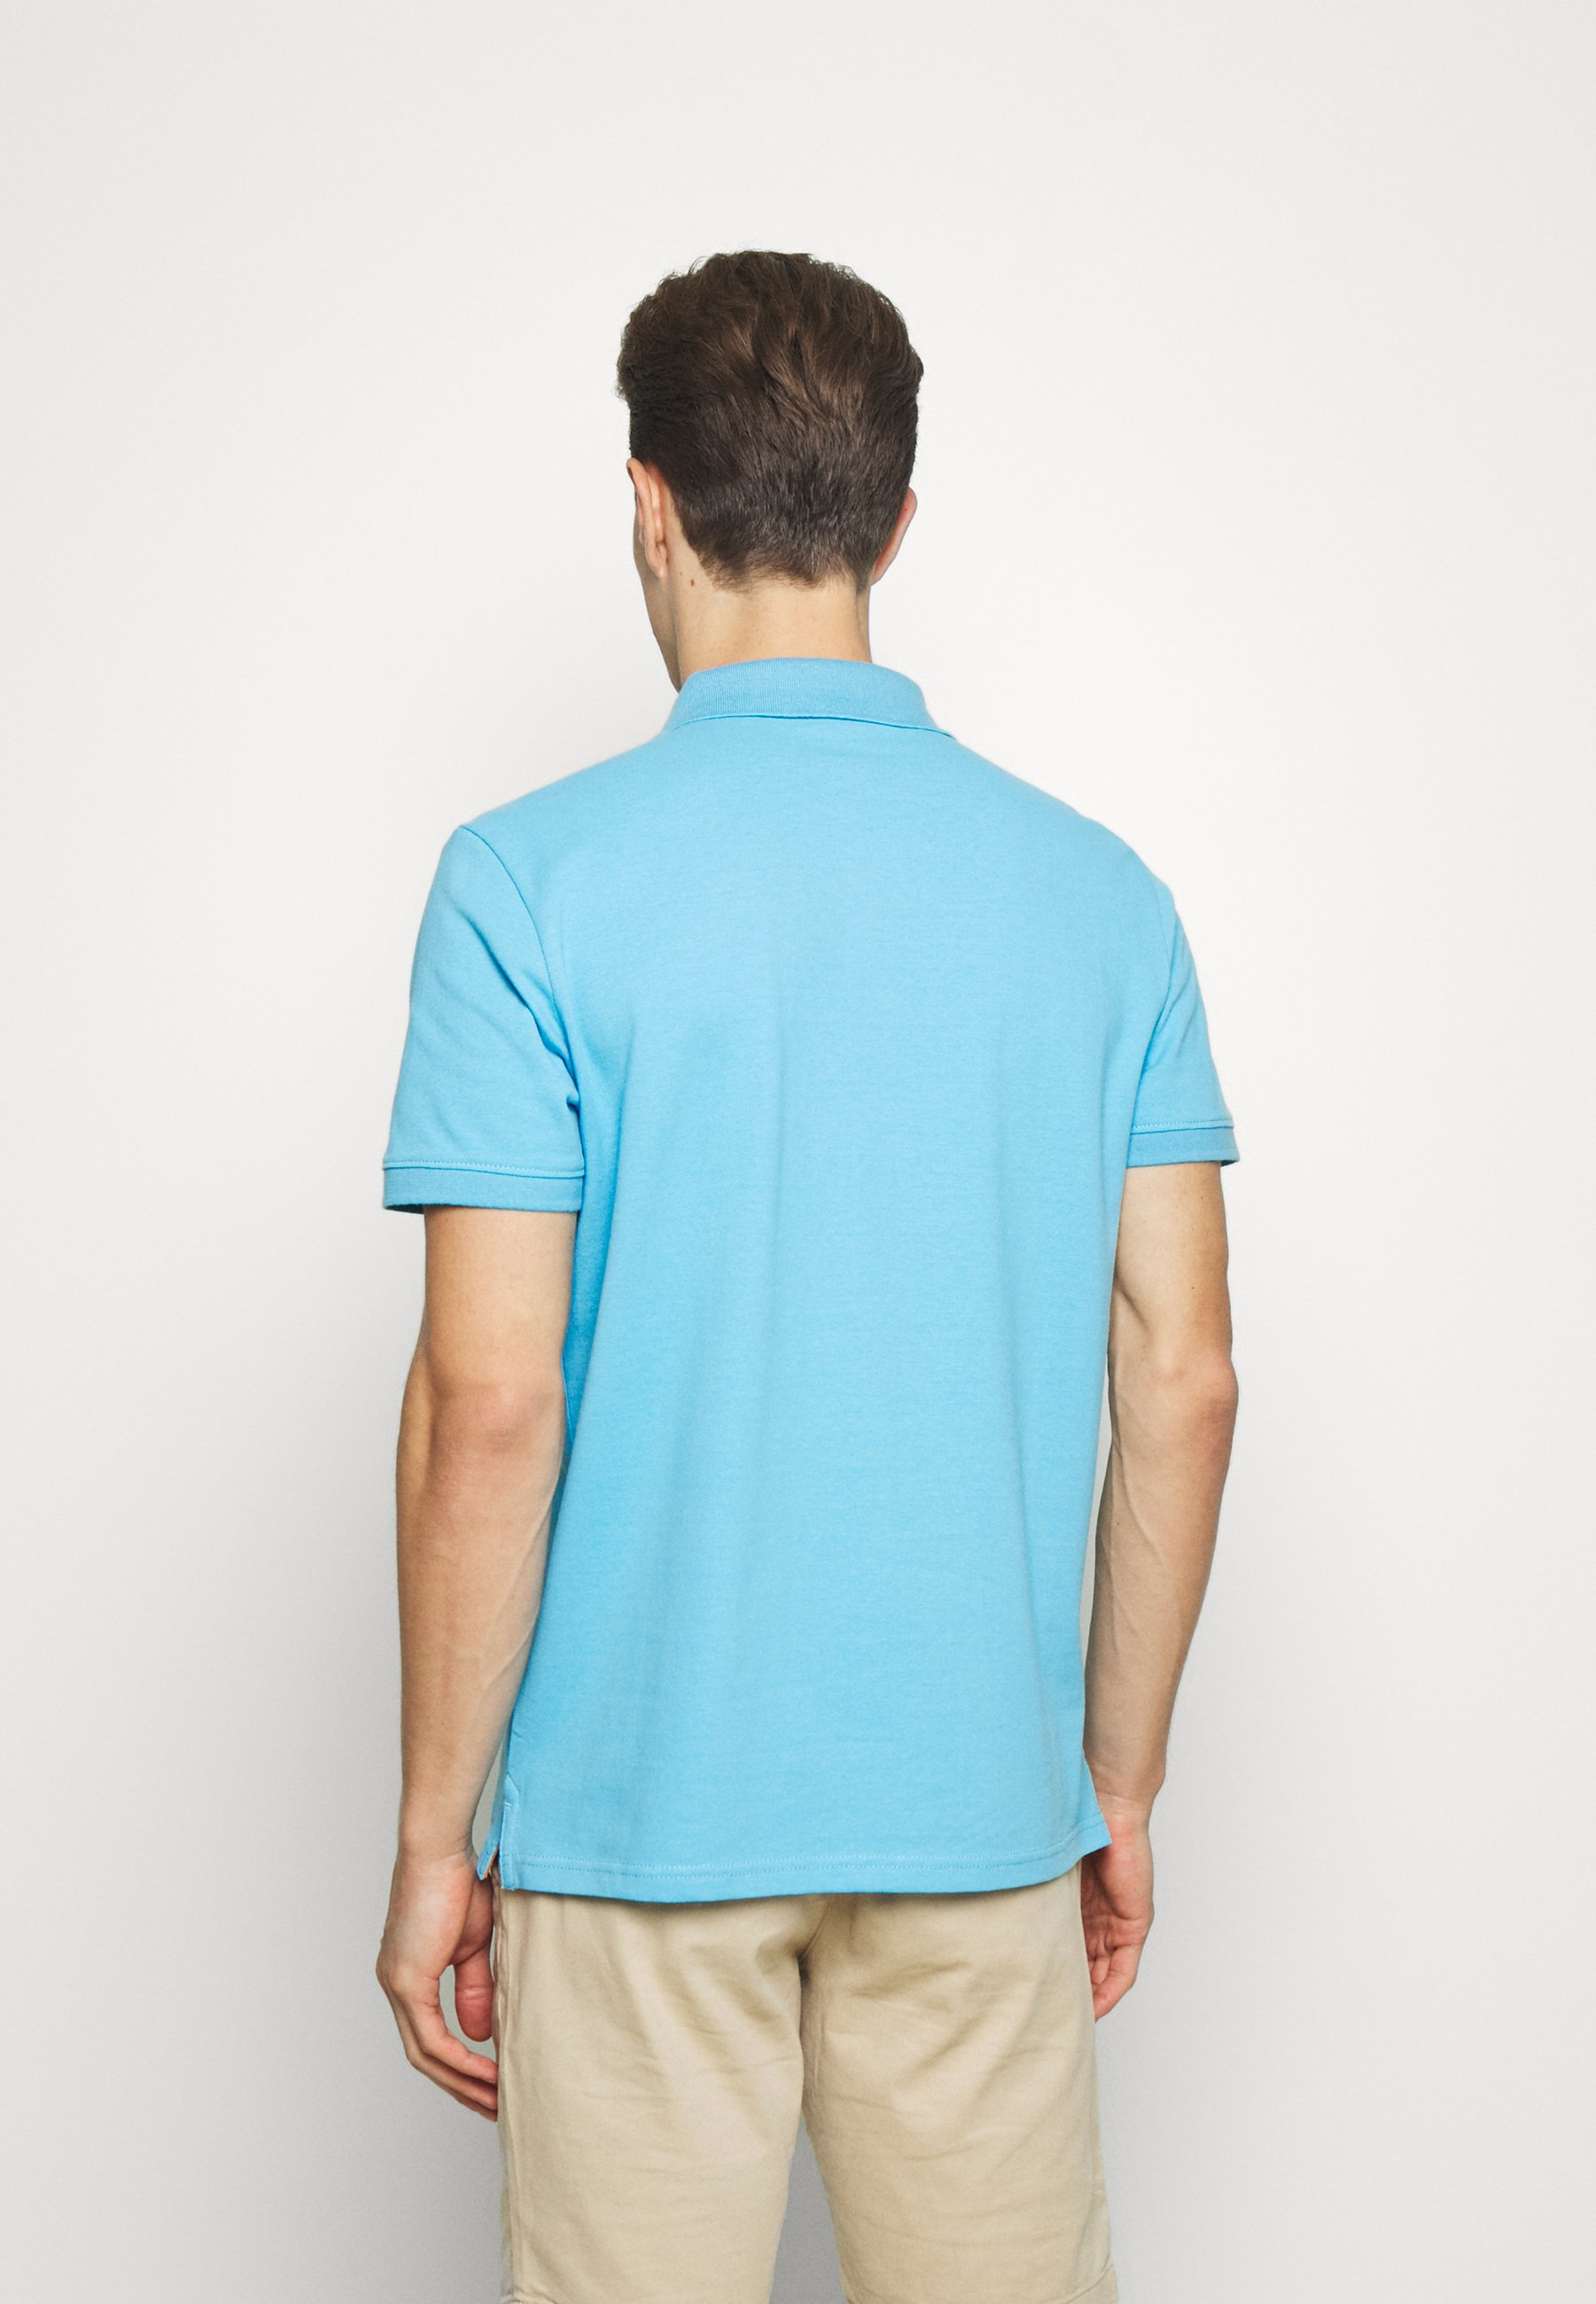 TOM TAILOR BASIC WITH CONTRAST - Polo shirt - north blue m95iy